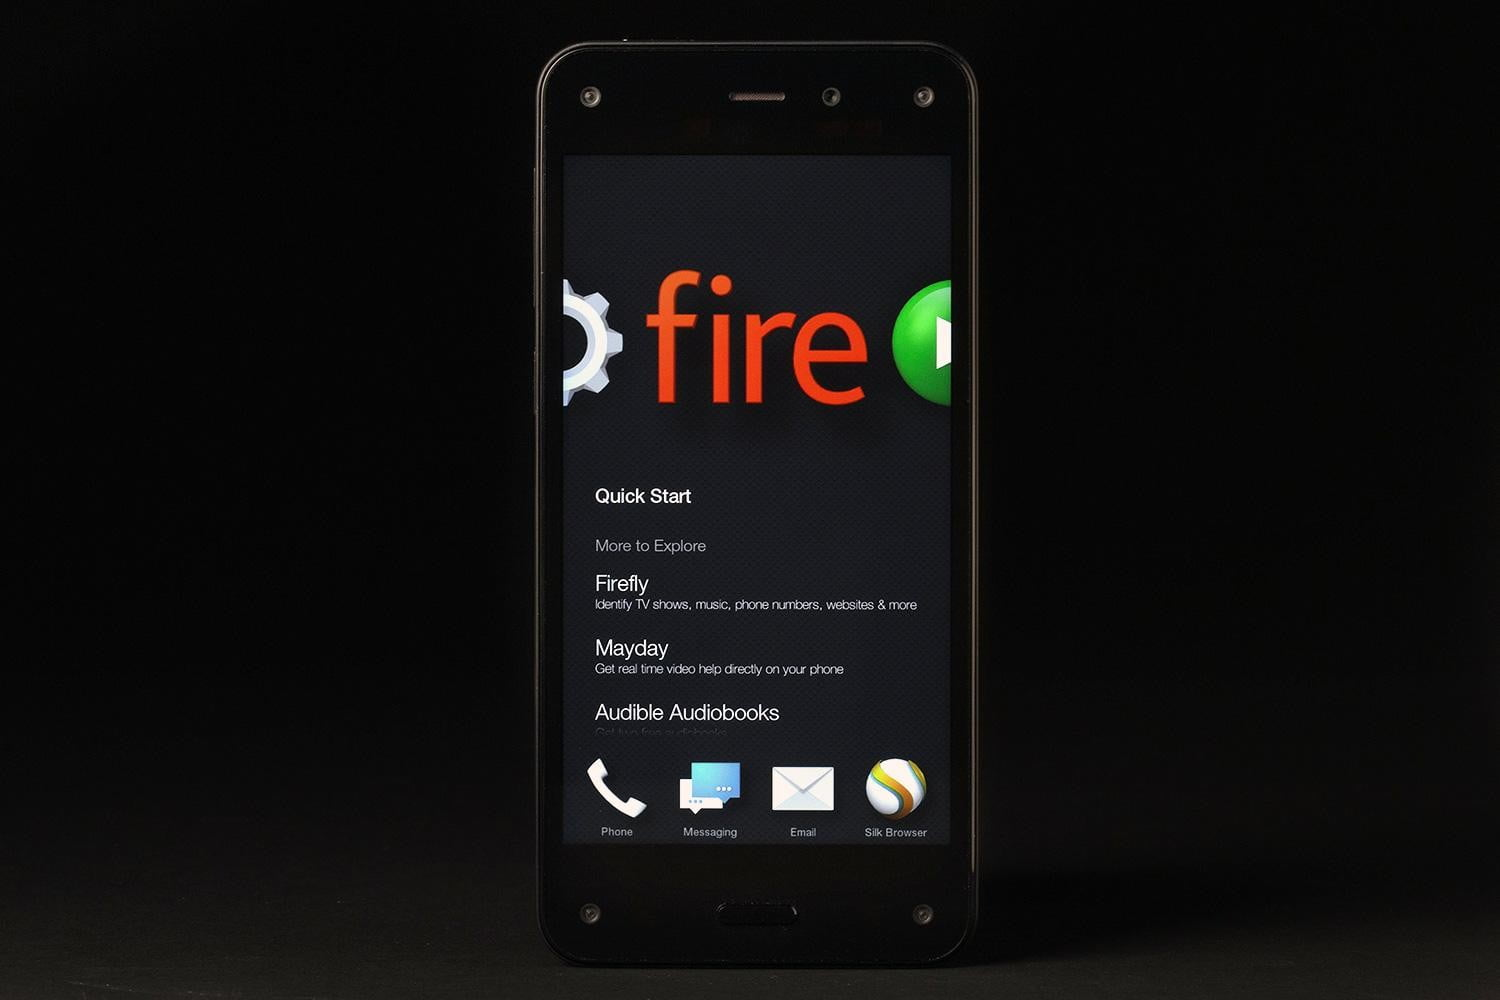 Fire Phone Review: Amazon's Phone is Only Half Baked